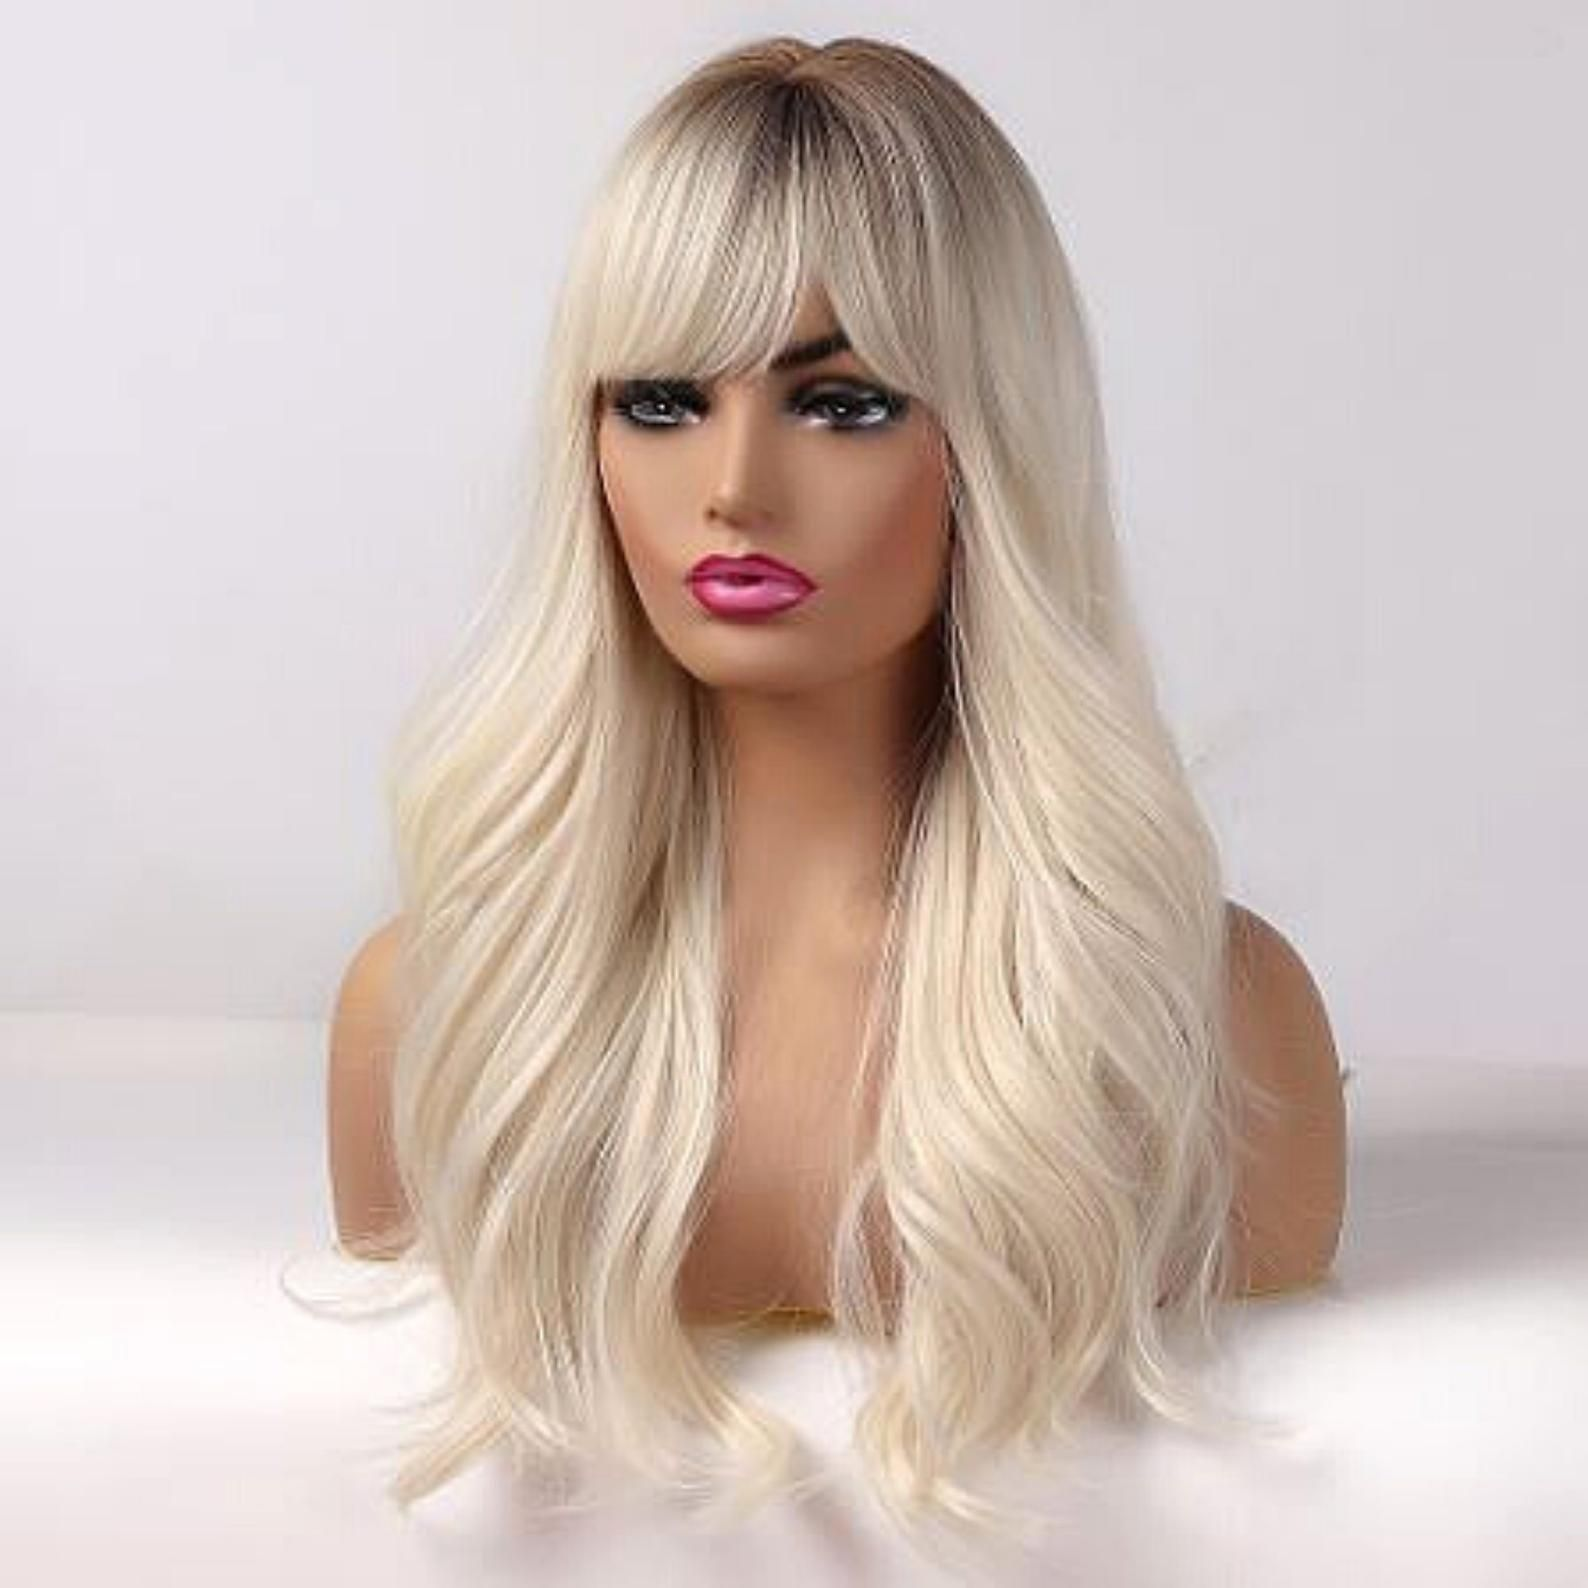 Ombre Beach Blonde Body Wave Wig With Bangs Etsy Long Blonde Wig Wigs With Bangs Bangs With Medium Hair